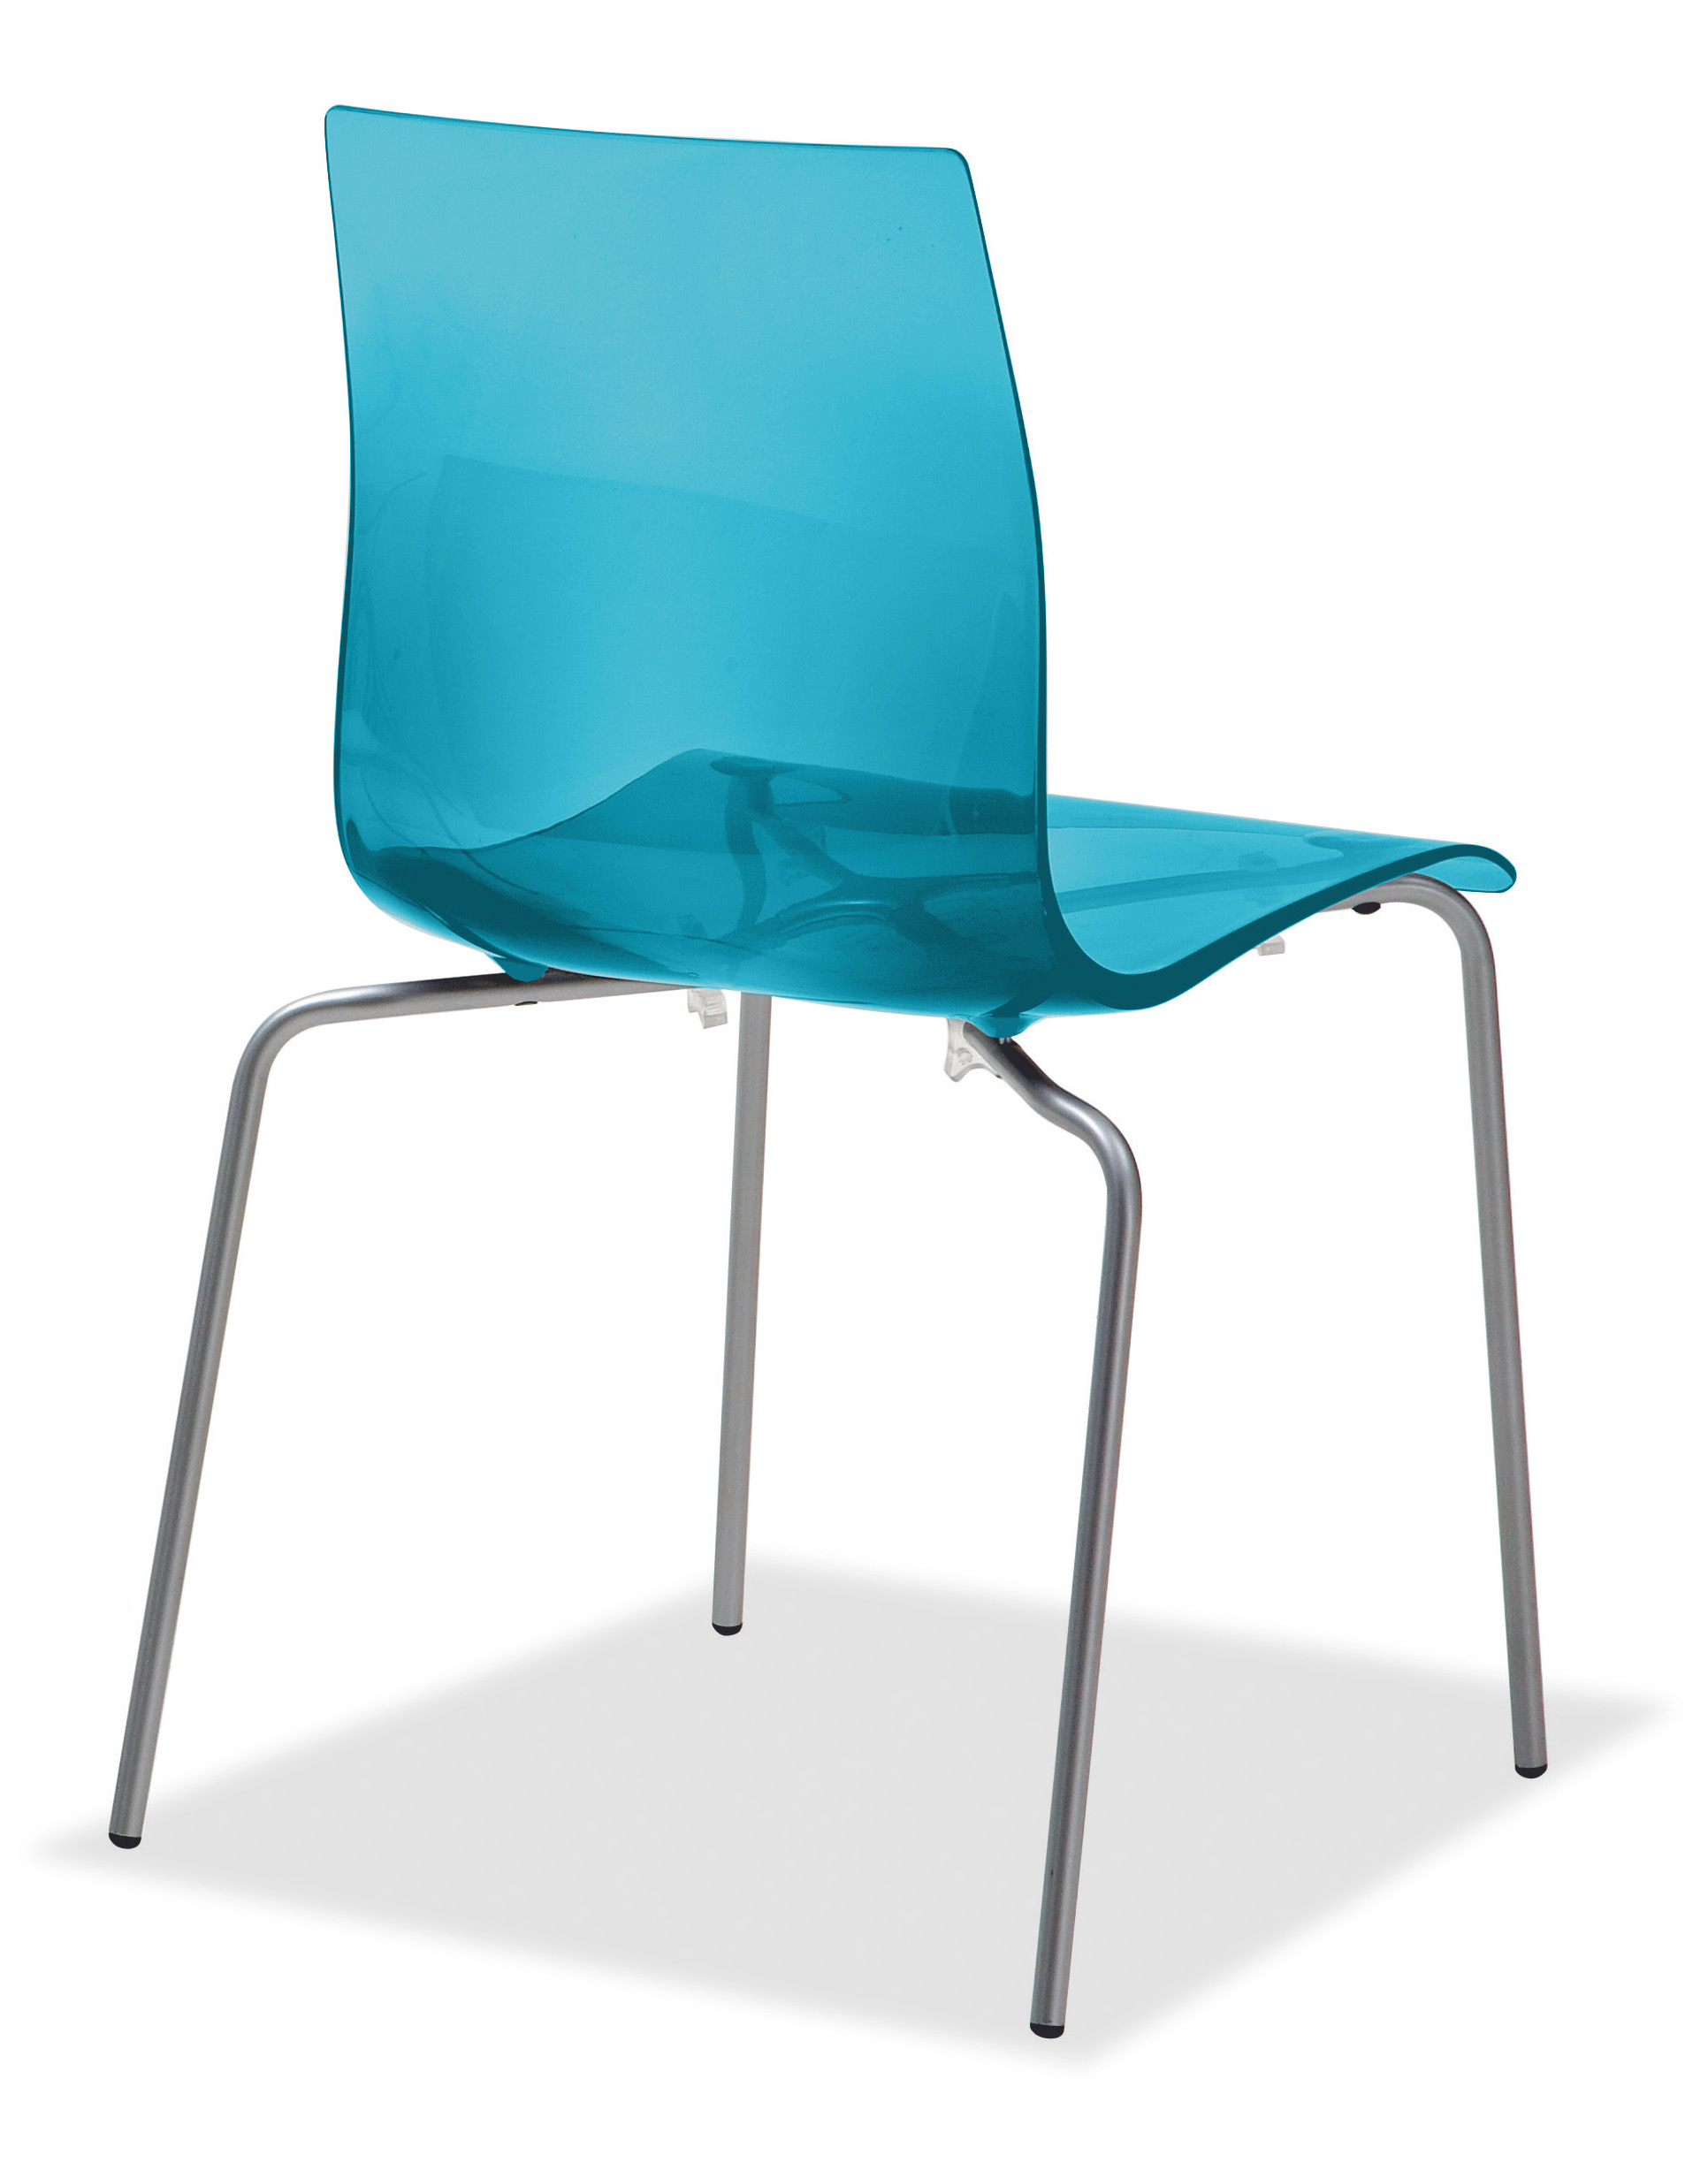 Gel B Stacking Dining Chair Set of 2 by DomItalia Italy Buy